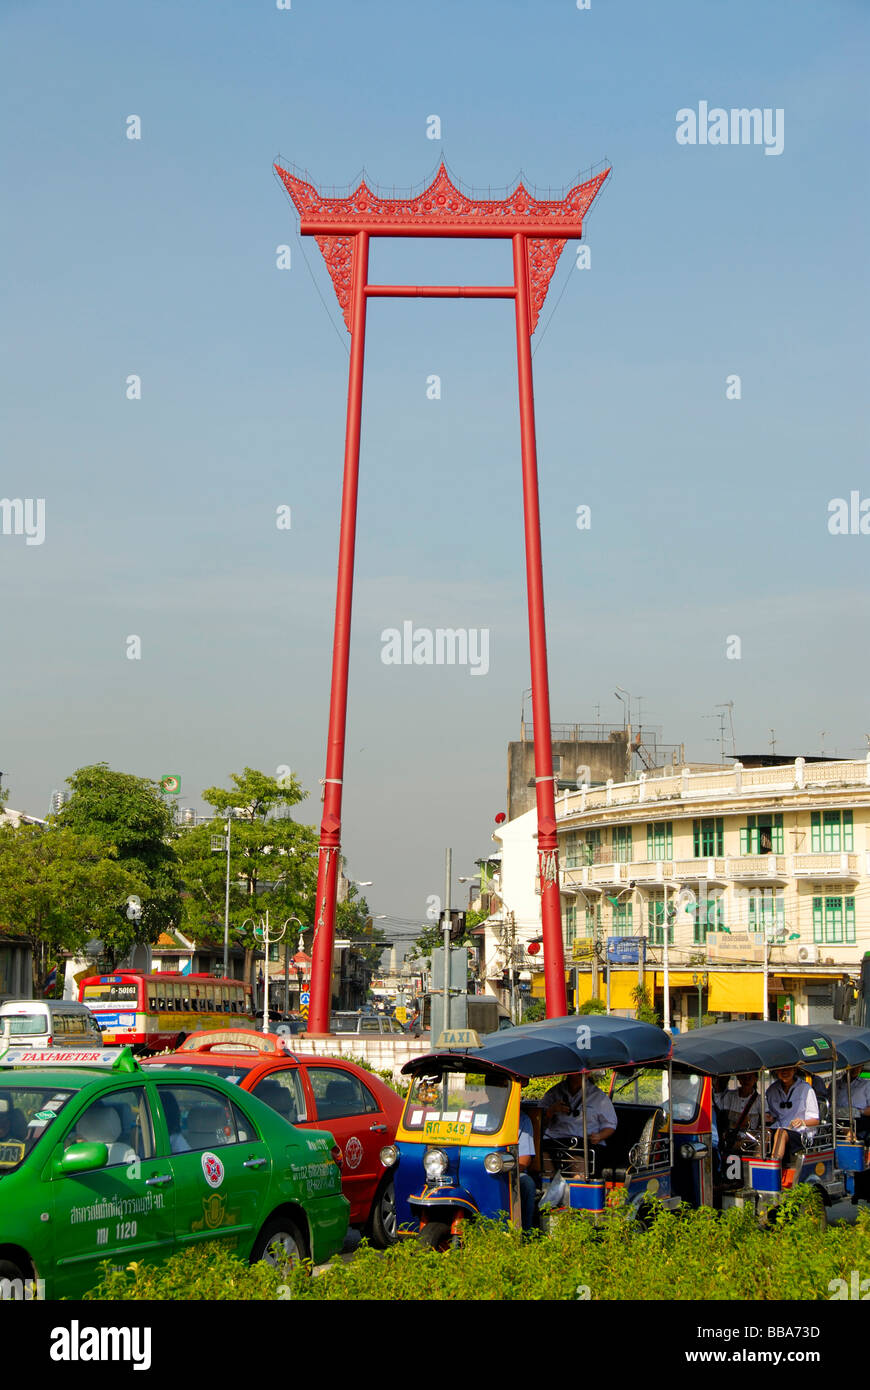 Big red swing, Giant Swing, colorful cars and Tuk Tuks in front of it, Bangkok, Thailand, Southeast Asia - Stock Image